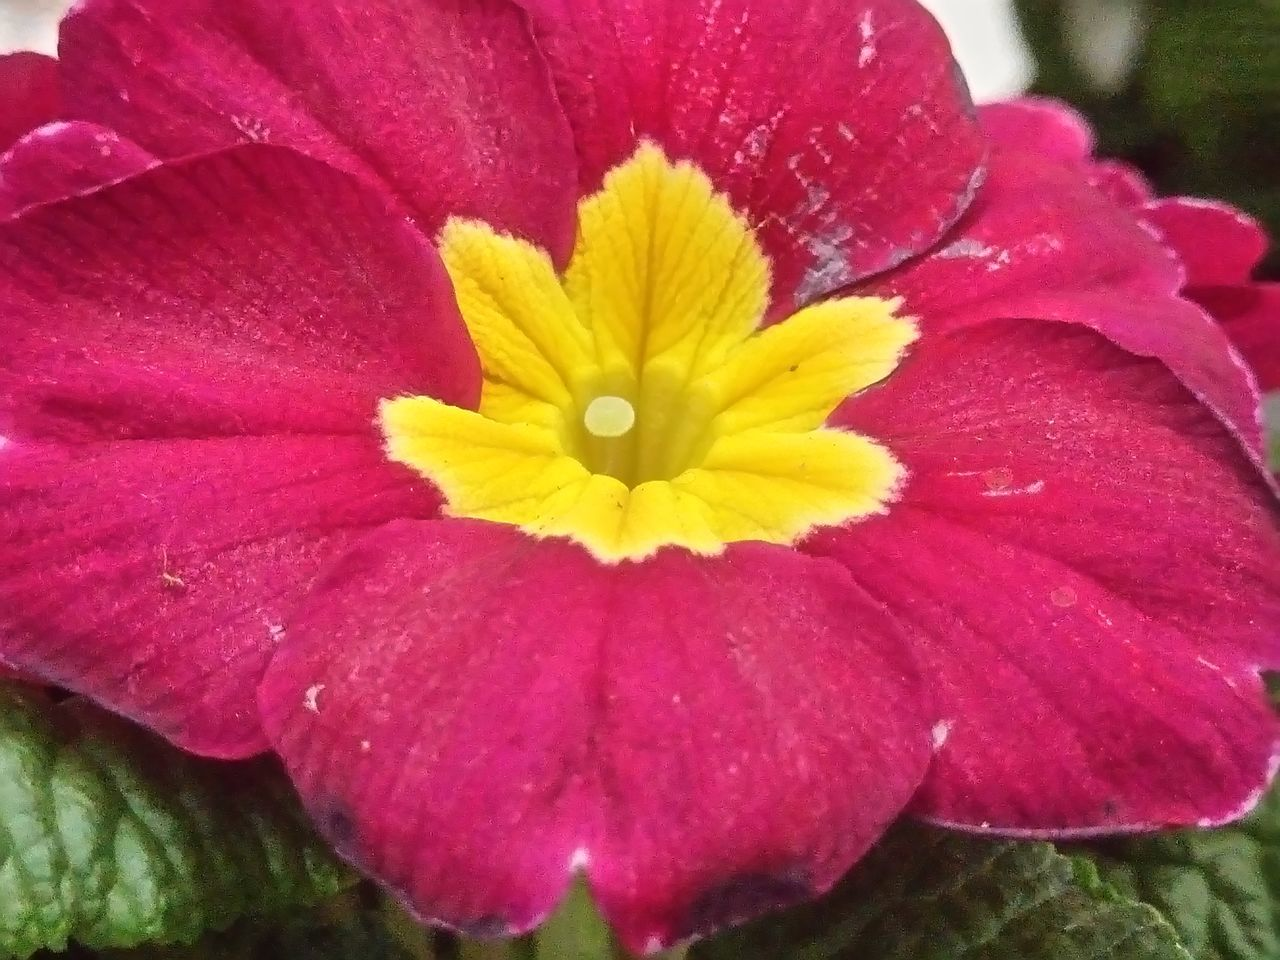 ein kleines Leuchten ... a small lights Flower Fragility Petal Beauty In Nature Flower Head Freshness Nature Red Pink Color Pollen Close-up No People Growth Blooming Outdoors Yellow Plant Zinnia  Maroon Primel Primrose Taking Photos The Week On Eyem Beliebte Fotos EyeEmNewHere